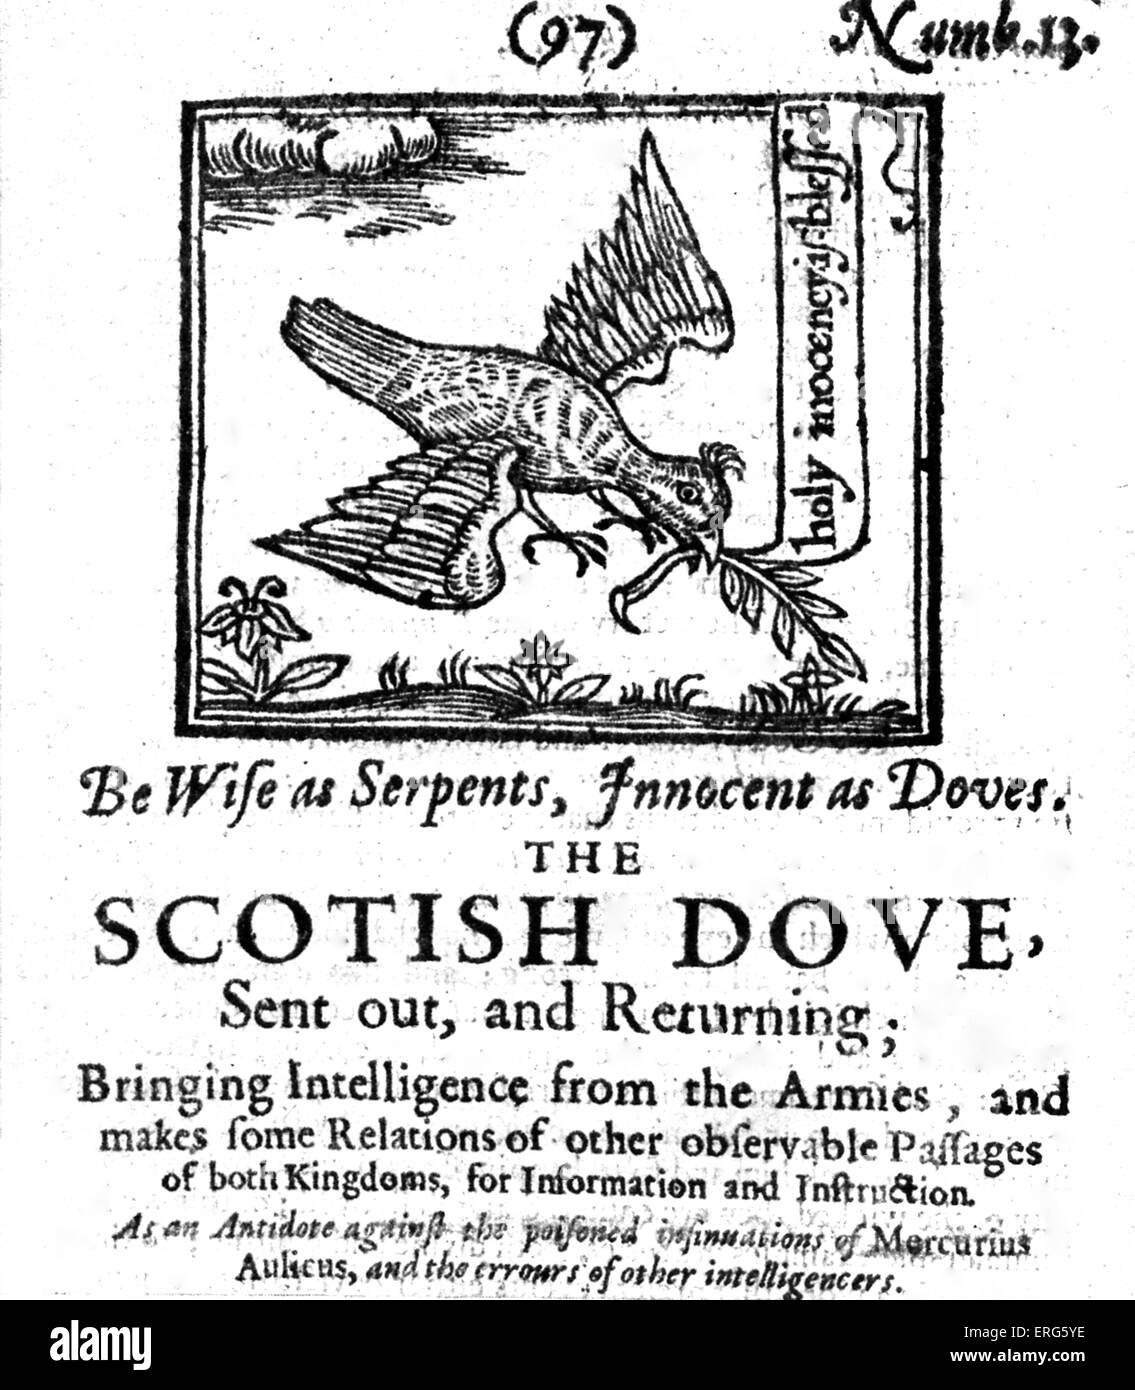 ' The Scotish Dove - Sent out and returning; bringing intelligence from the Armies  '.  January 1643. Scottish - Stock Image